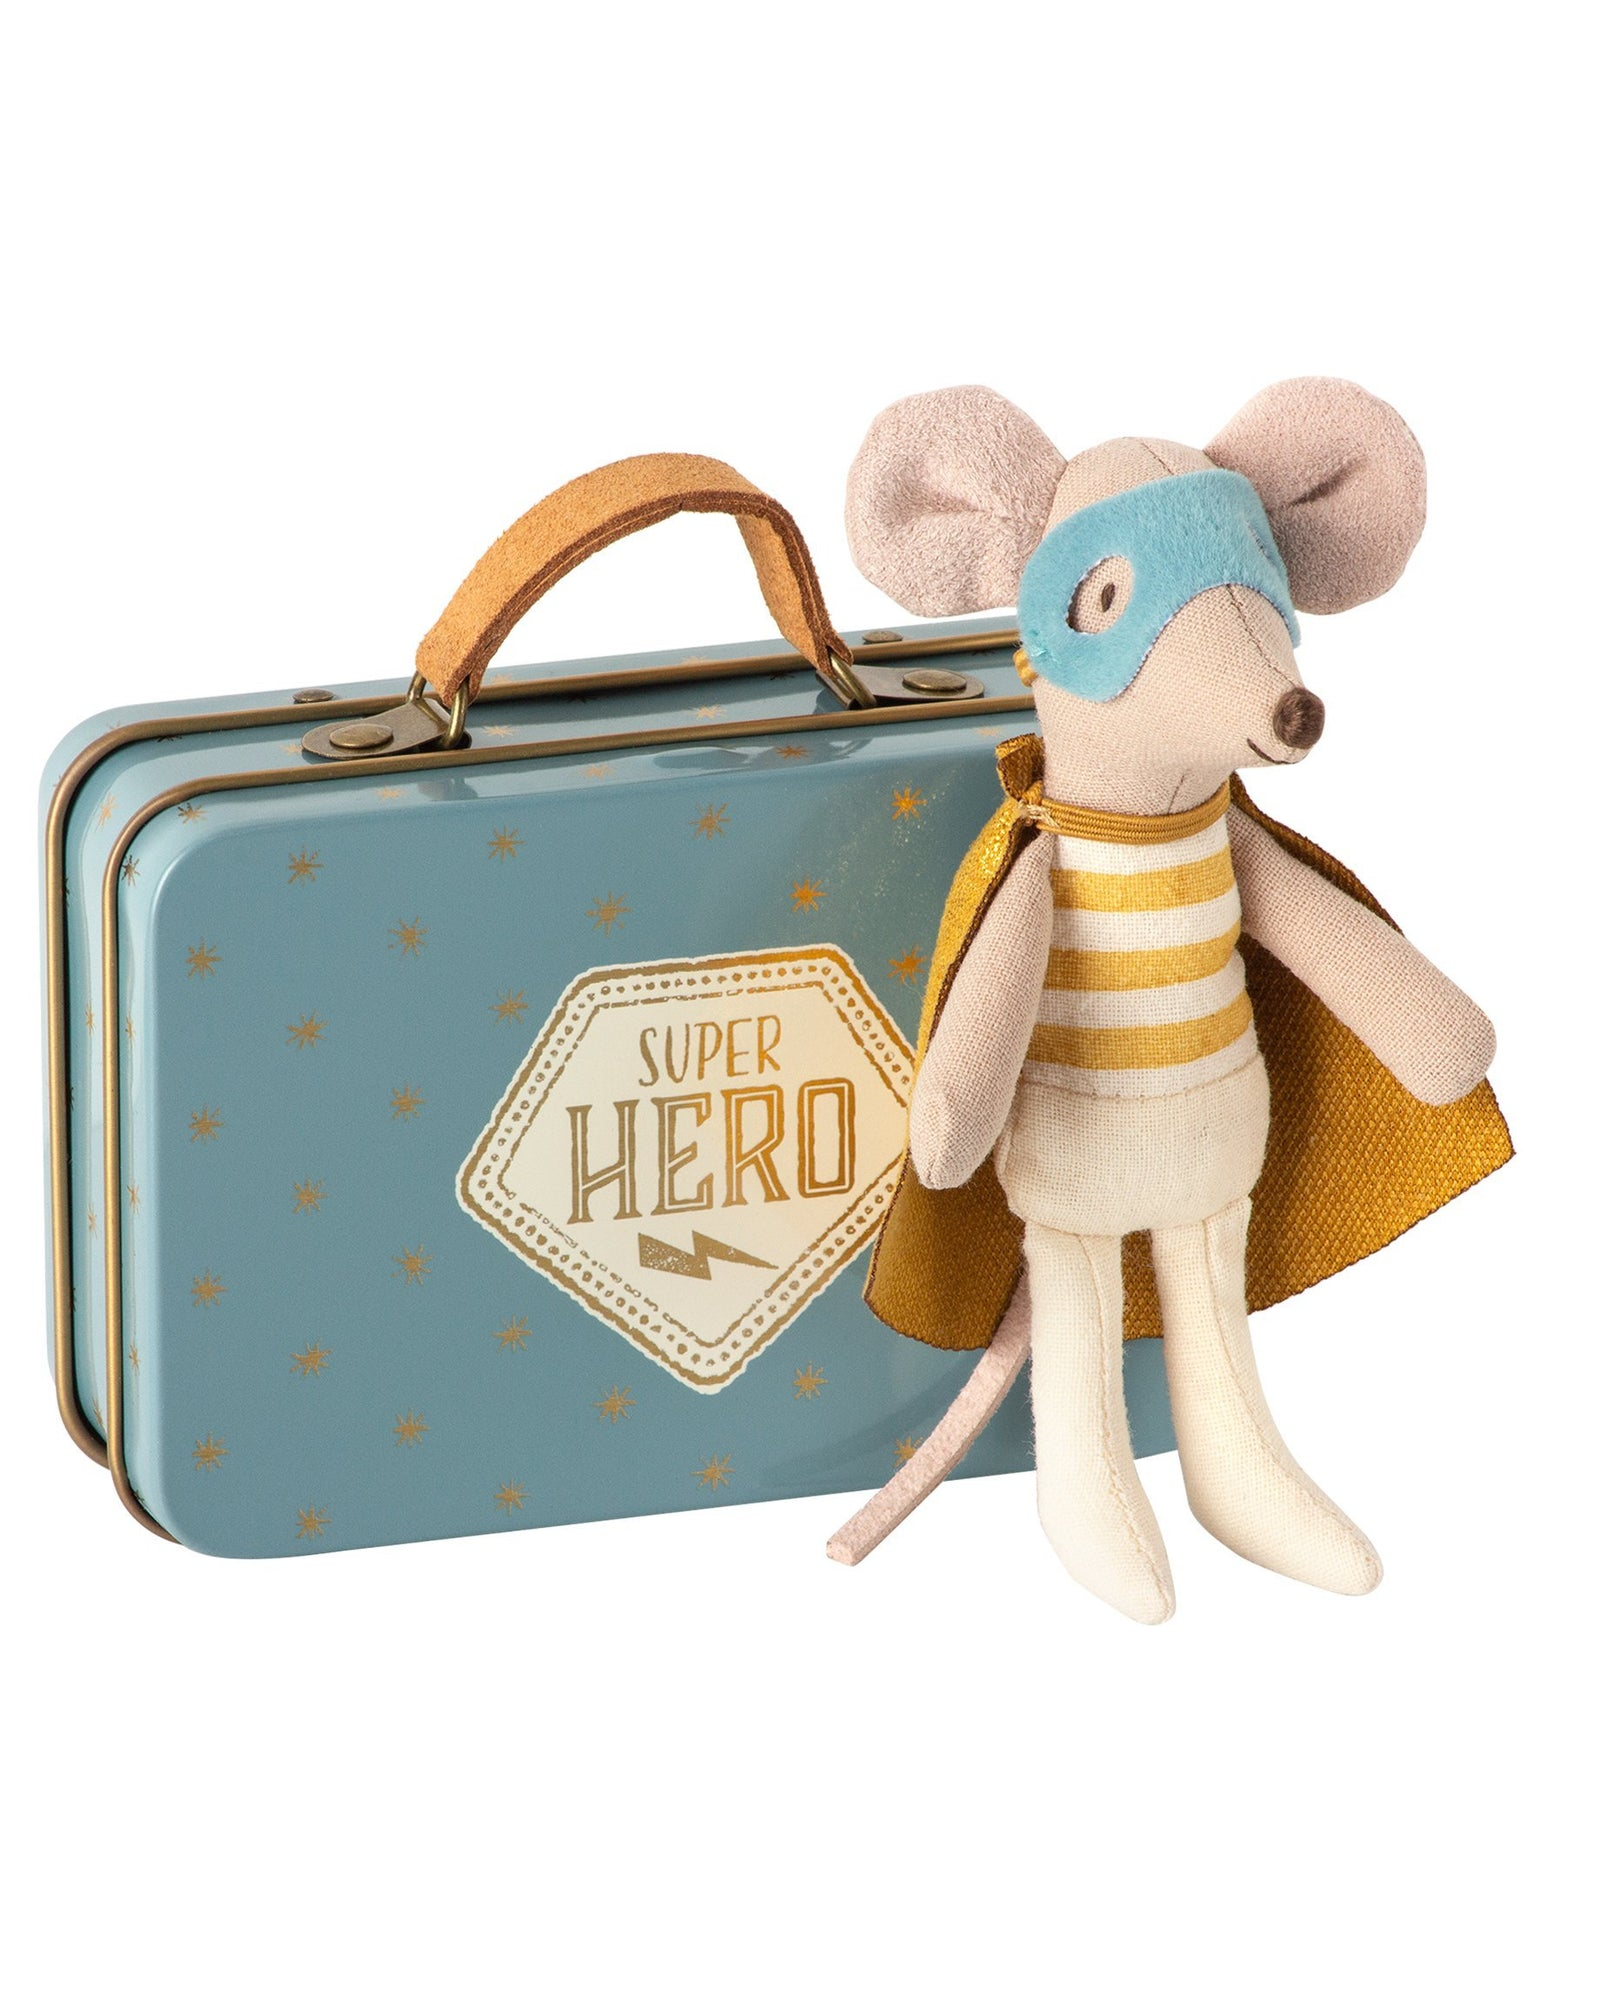 Little maileg play little brother superhero mouse in suitcase